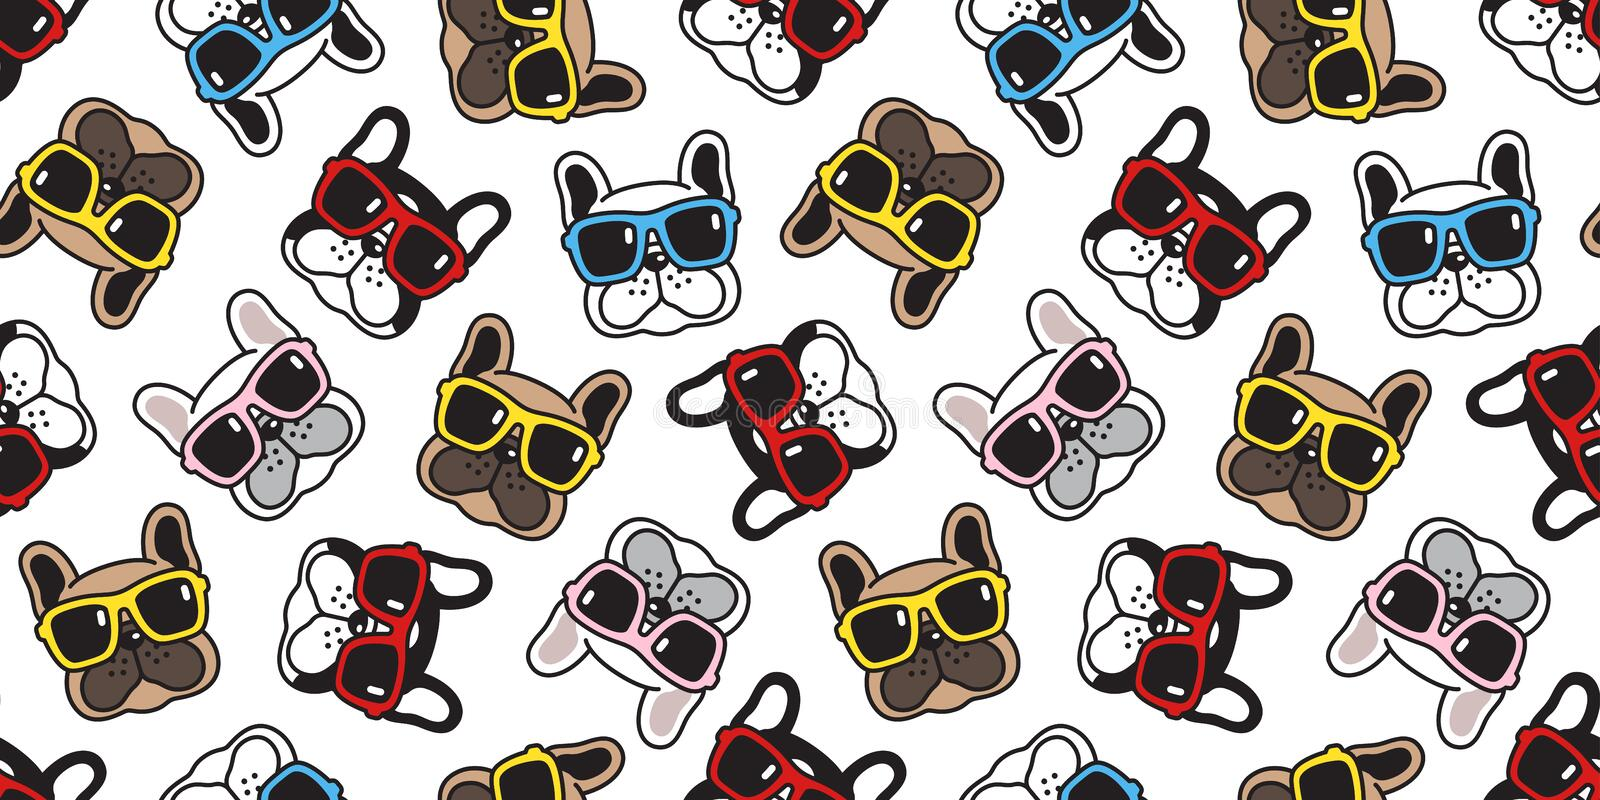 Dog seamless pattern french bulldog vector sunglasses face scarf isolated repeat wallpaper cartoon tile background doodle. Cute royalty free illustration